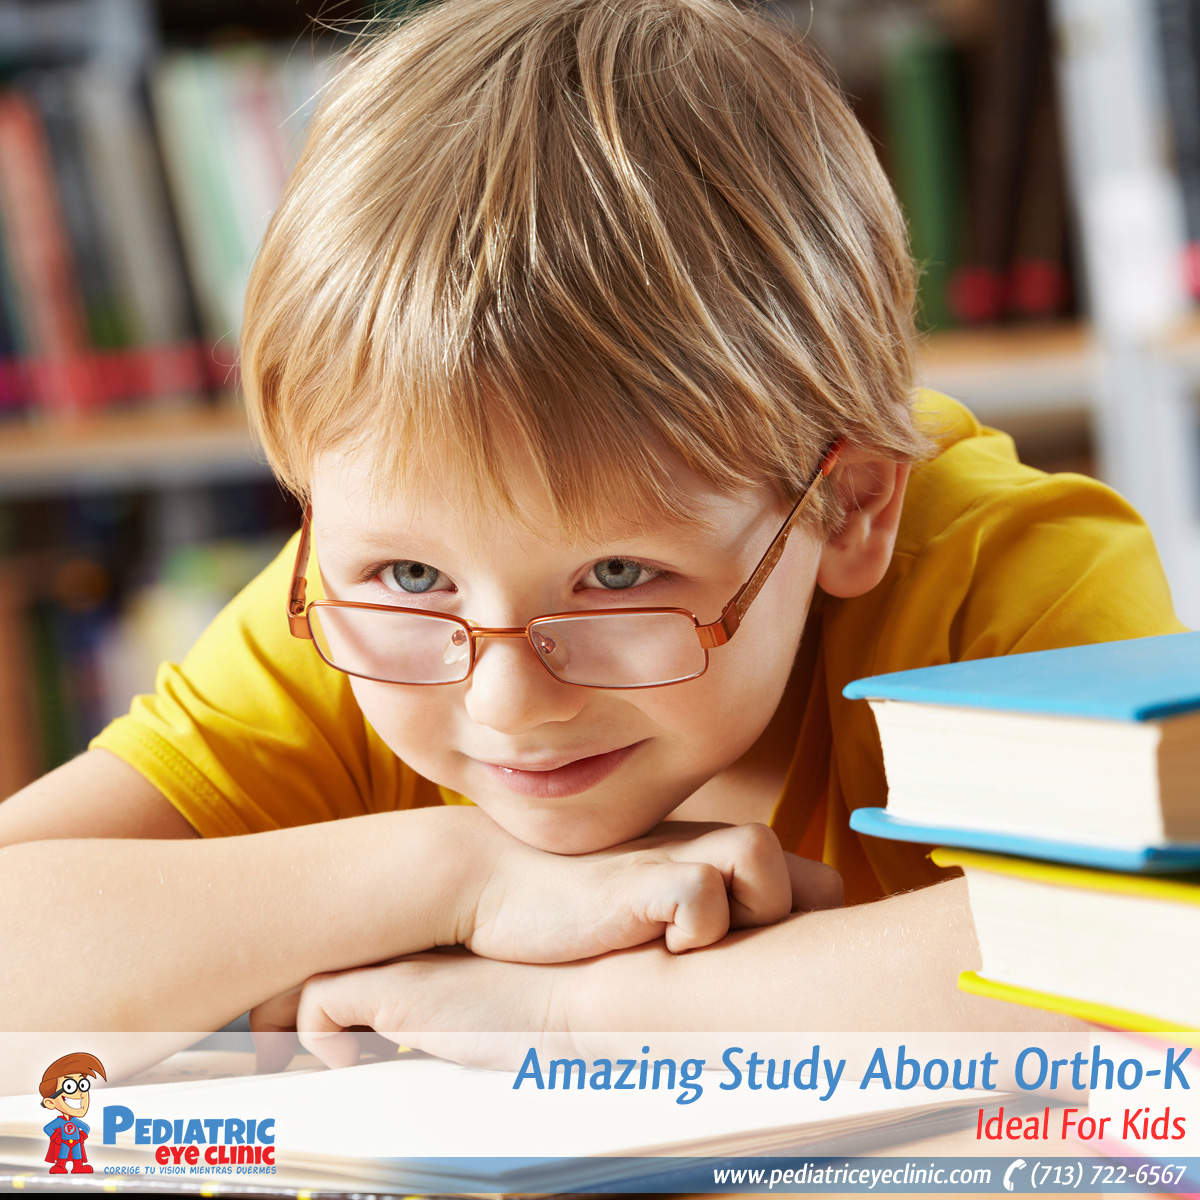 29-amazing-study-about-ortho-k